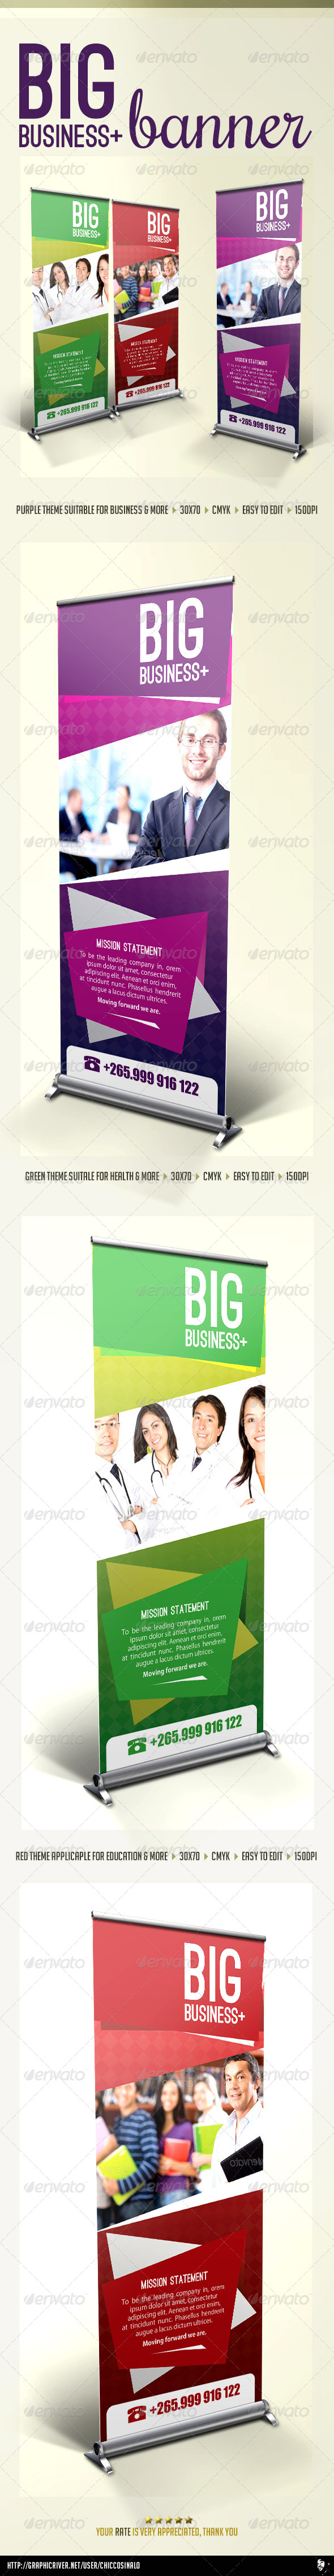 Big business banner template by chiccosinalo graphicriver big business banner template wajeb Image collections